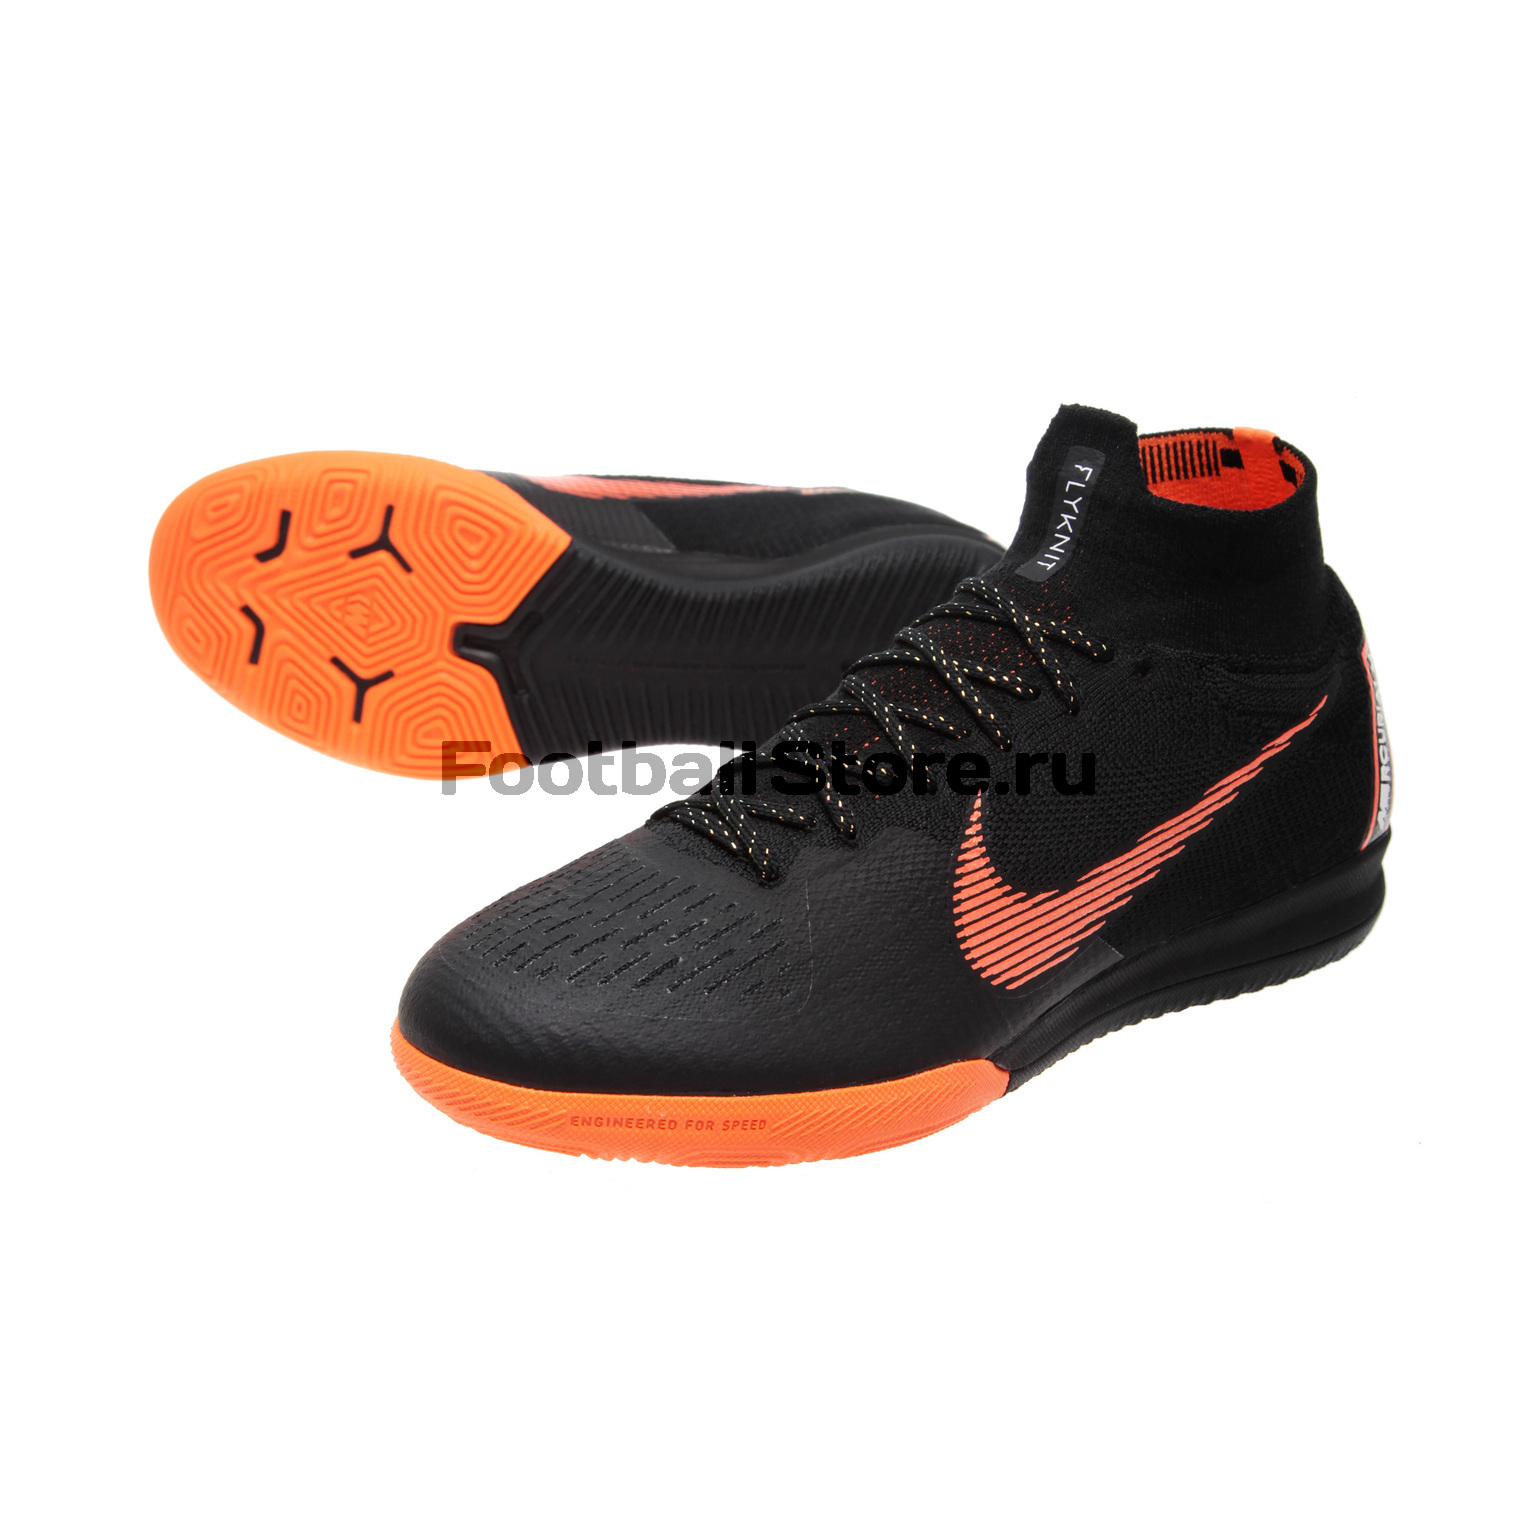 Обувь для зала Nike SuperflyX 6 Elite IC AH7373-081 чулок д щитков nike guard lock elite sleeve su12 se0173 011 m чёрный